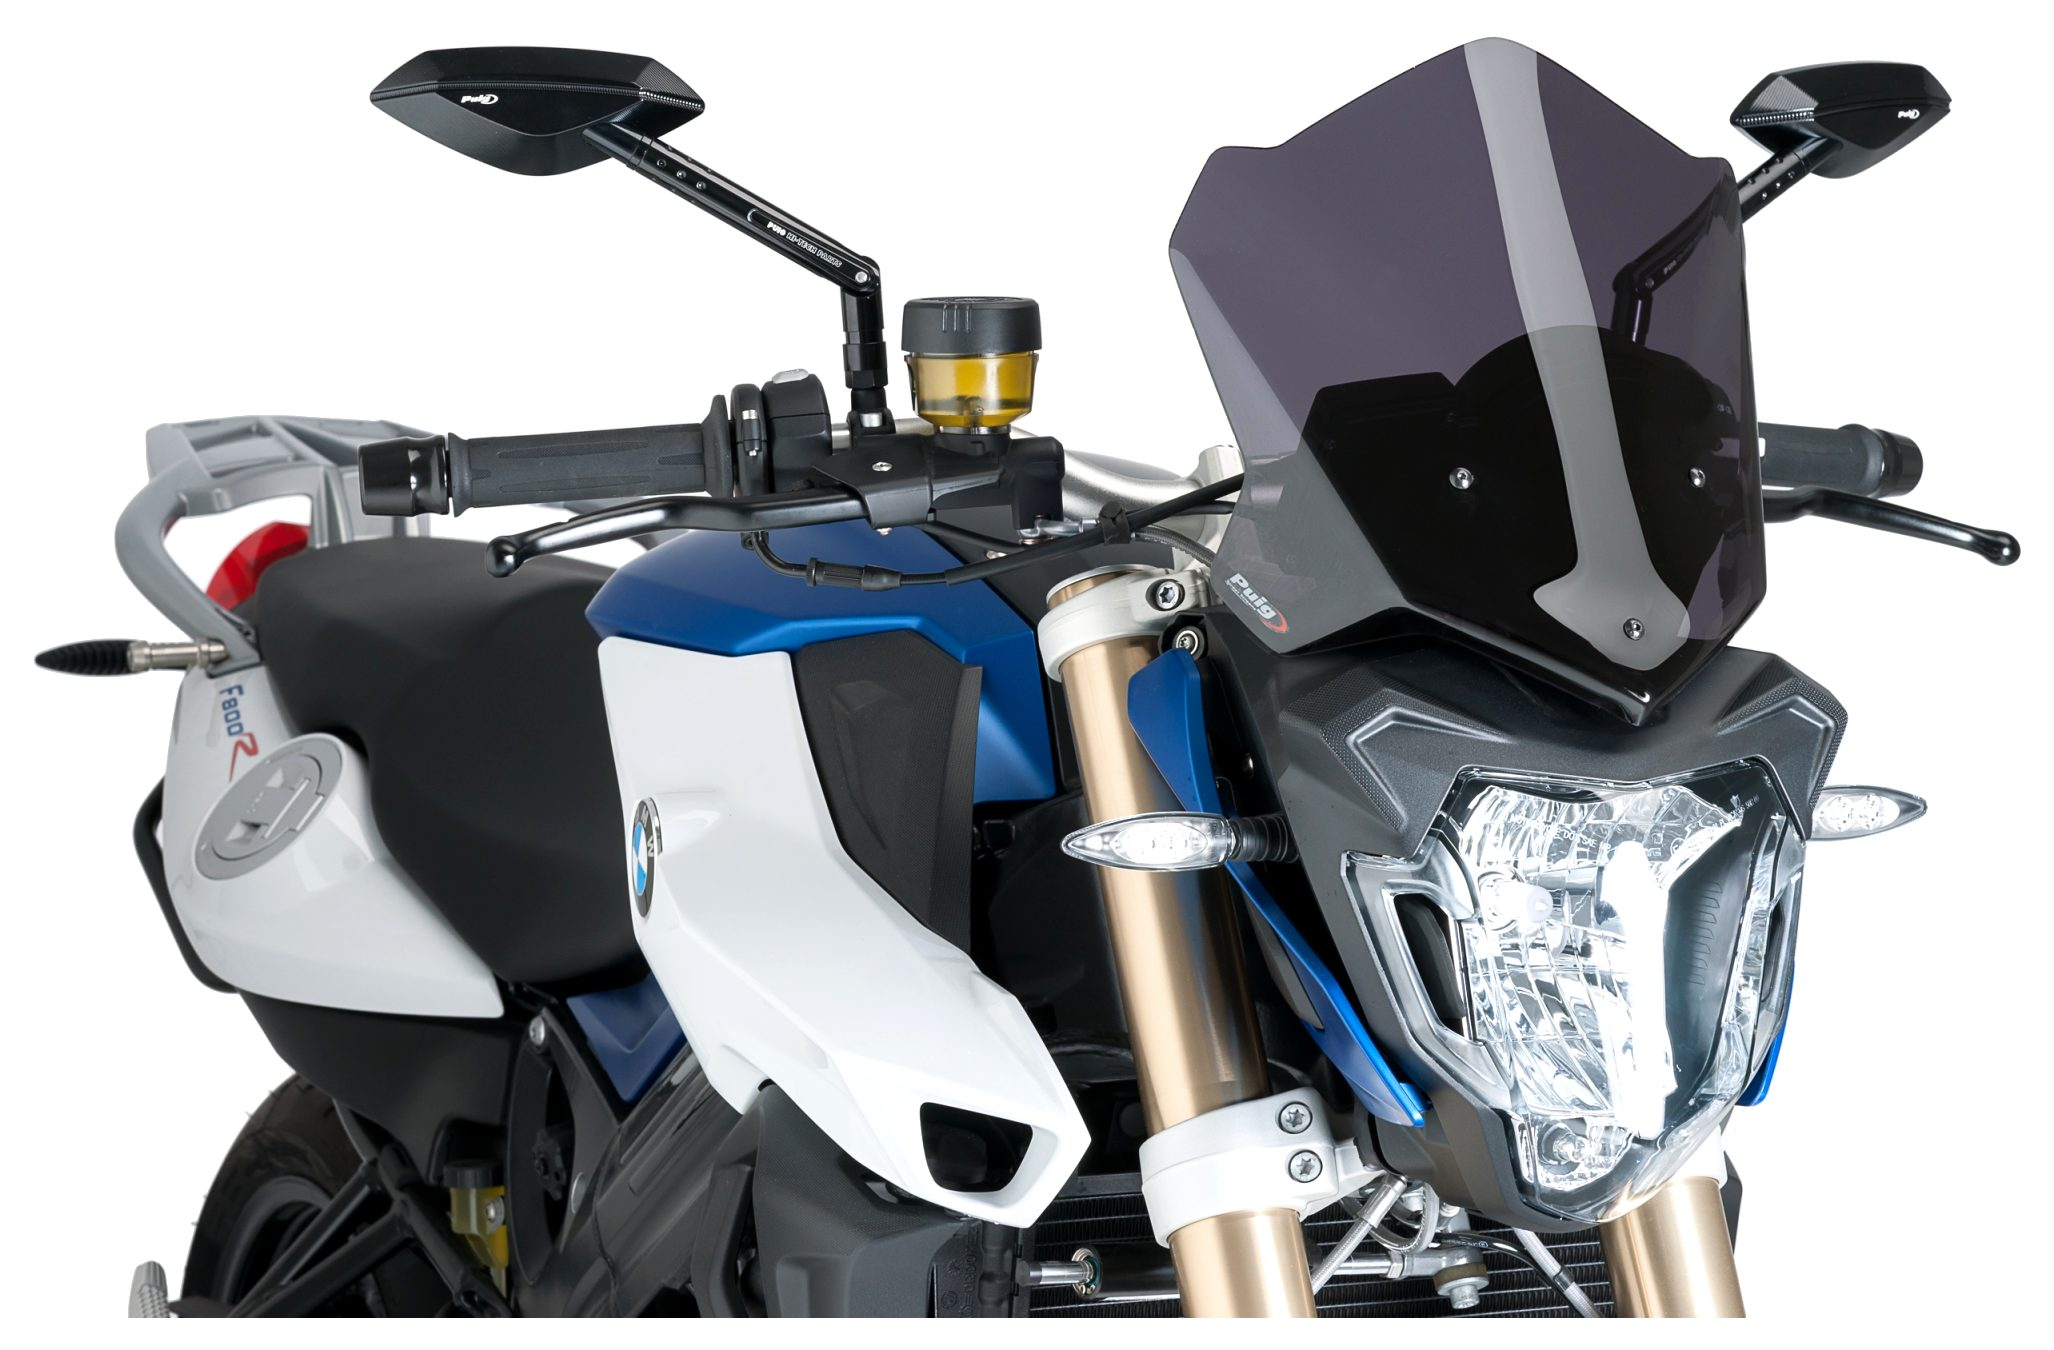 2021 BMW f800r Specs and Review